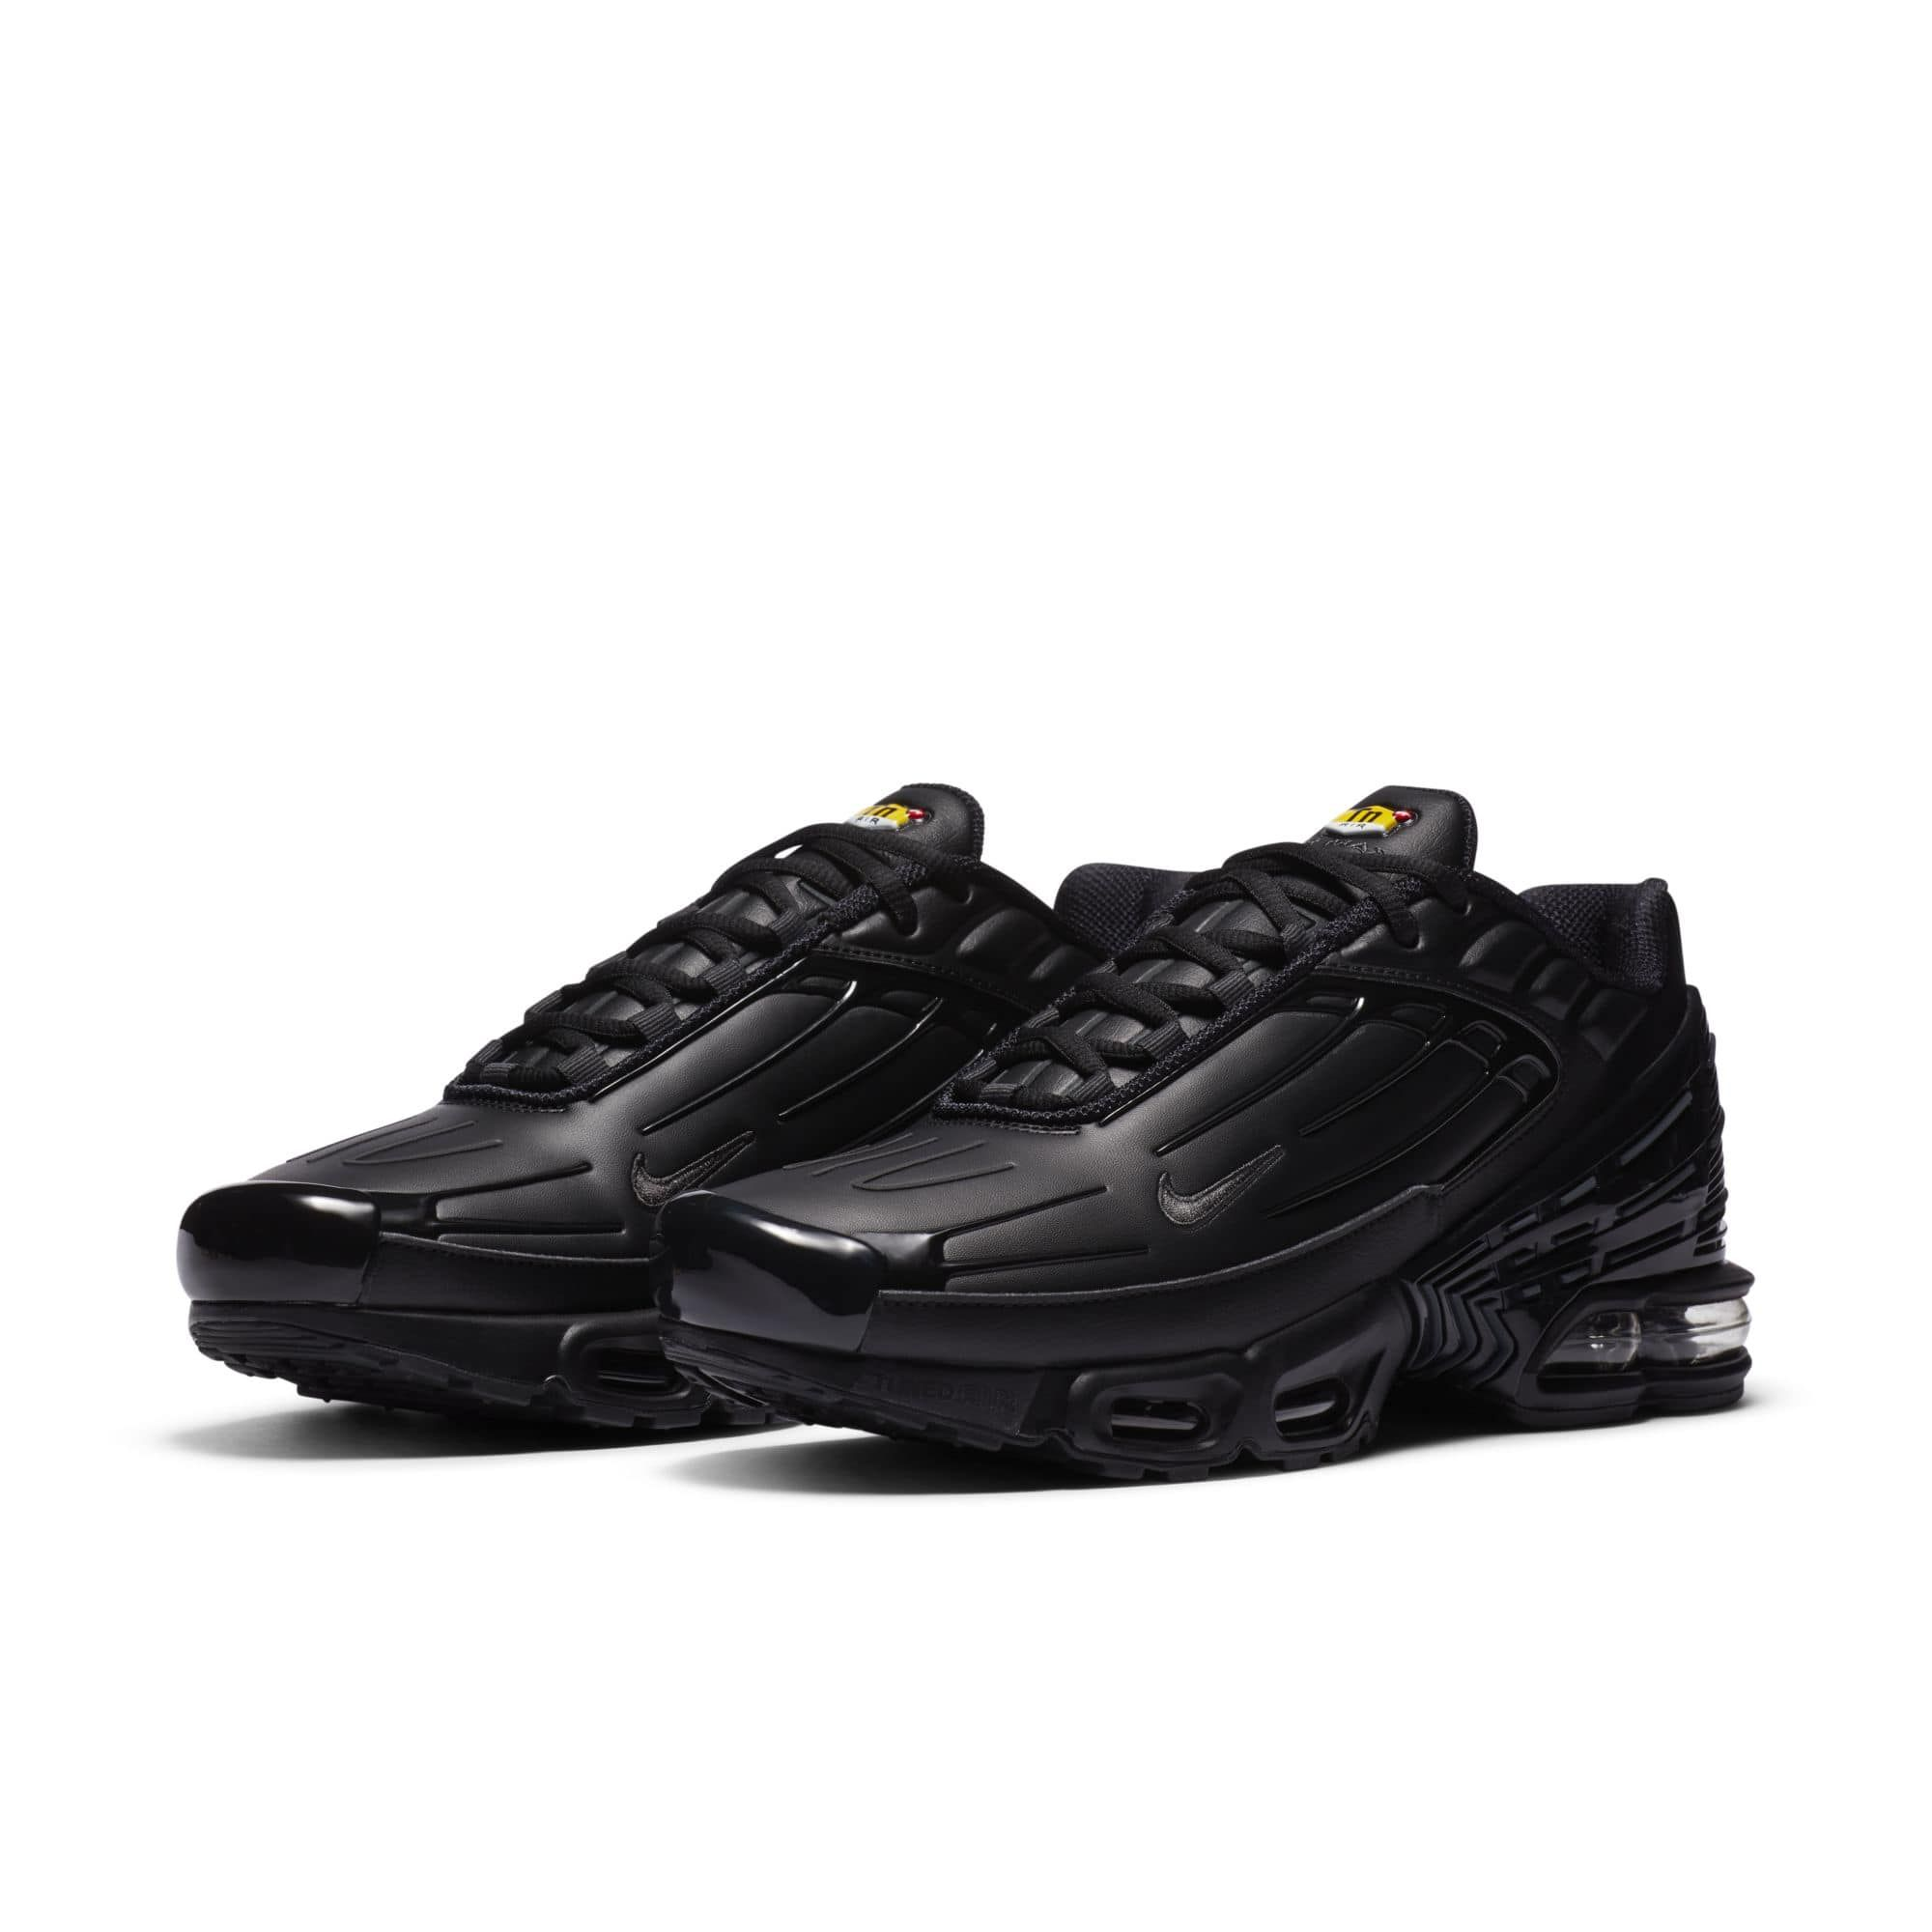 air max plus leather black